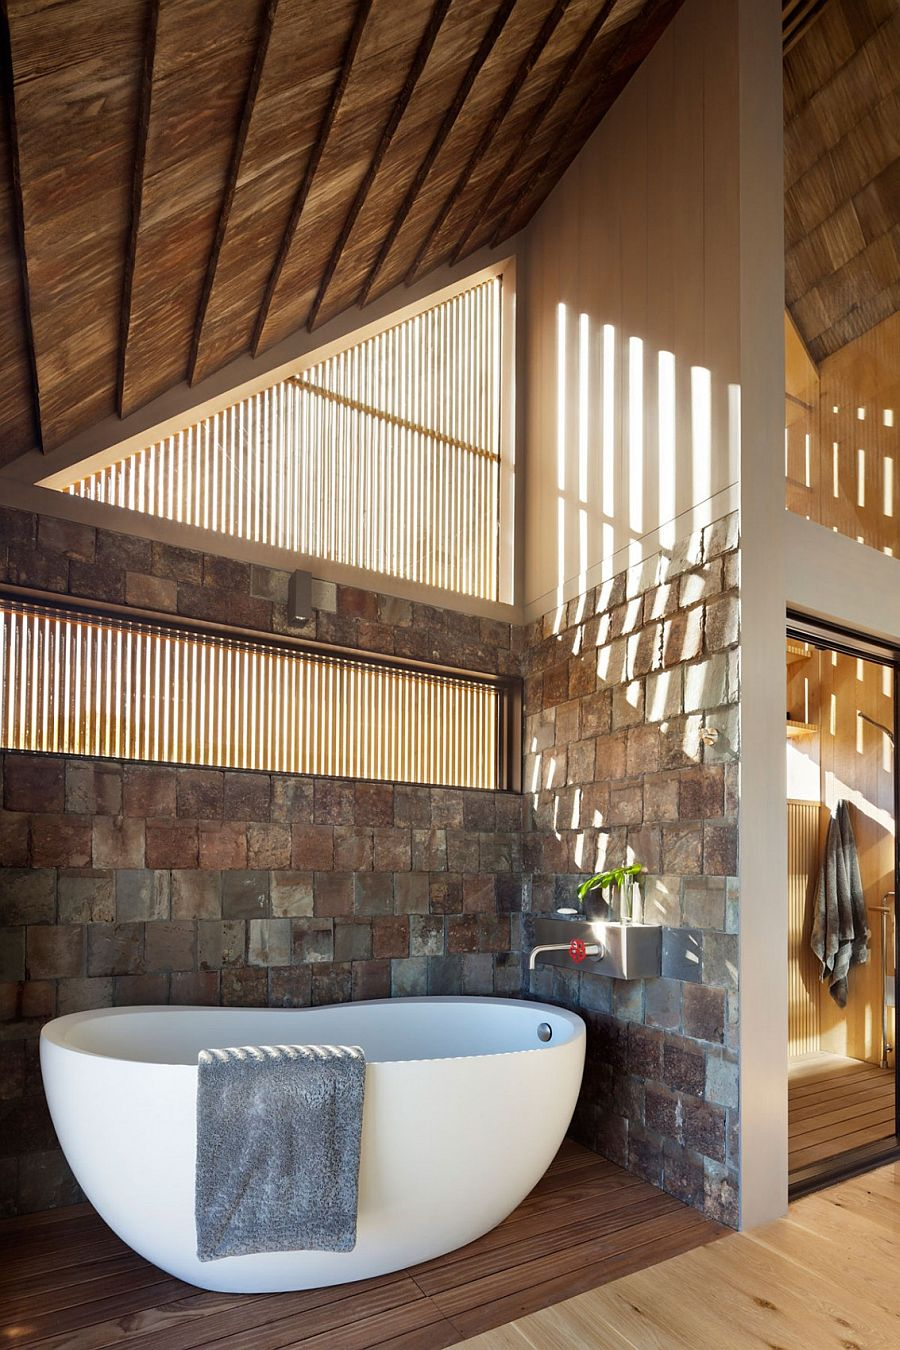 Bathroom with stone walls and freestanding bathtub